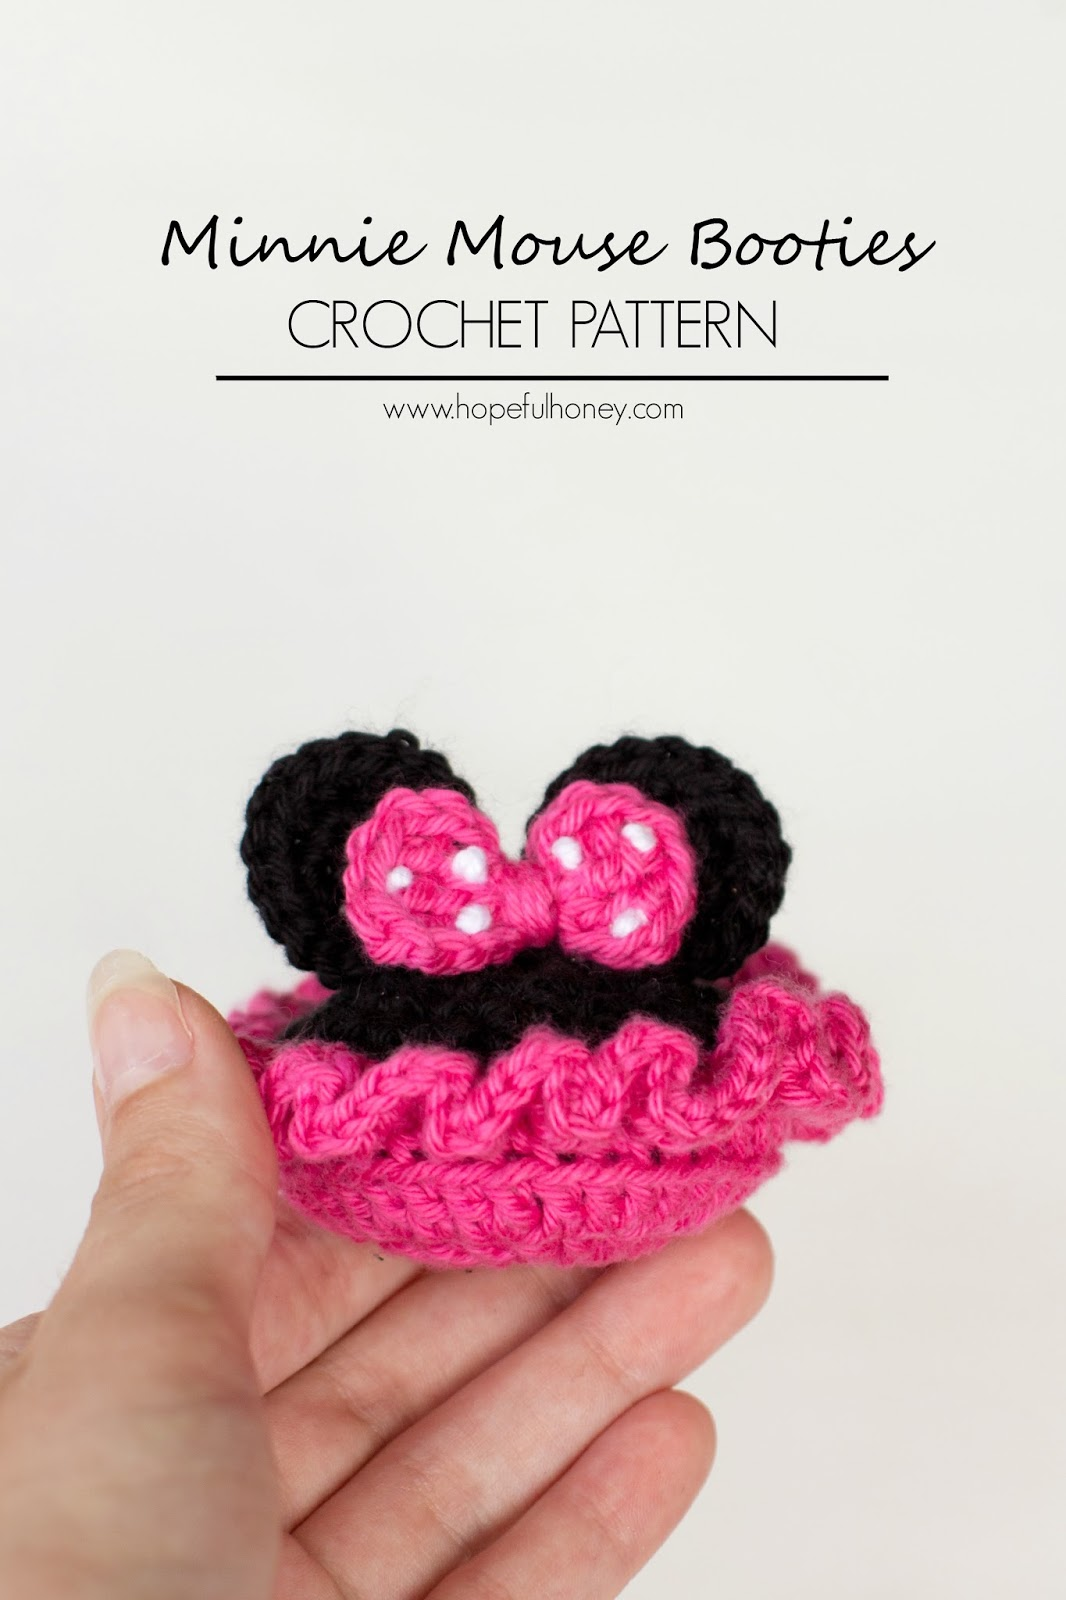 Crochet create minnie mouse inspired baby booties crochet pattern